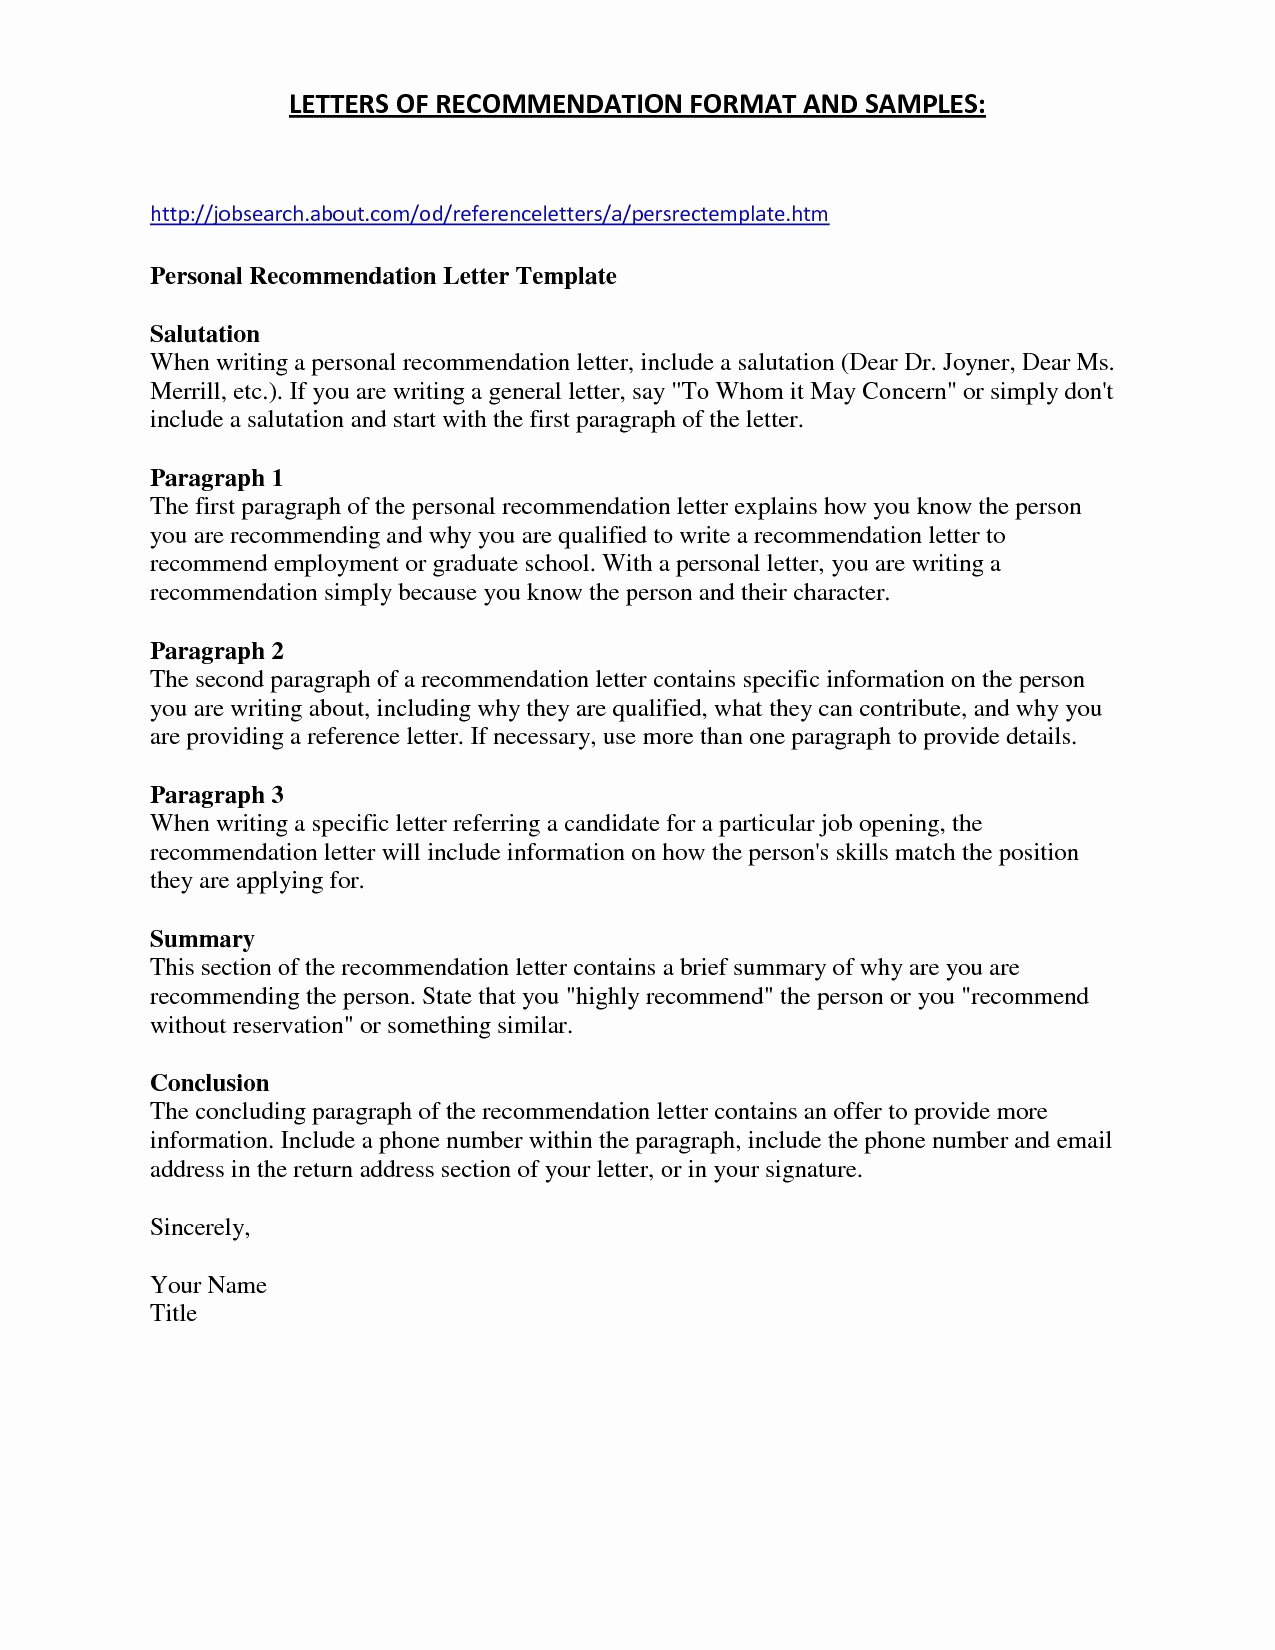 Cover Letter Template Australia - Free Cover Letter Template Inspirational Retail Cover Letter